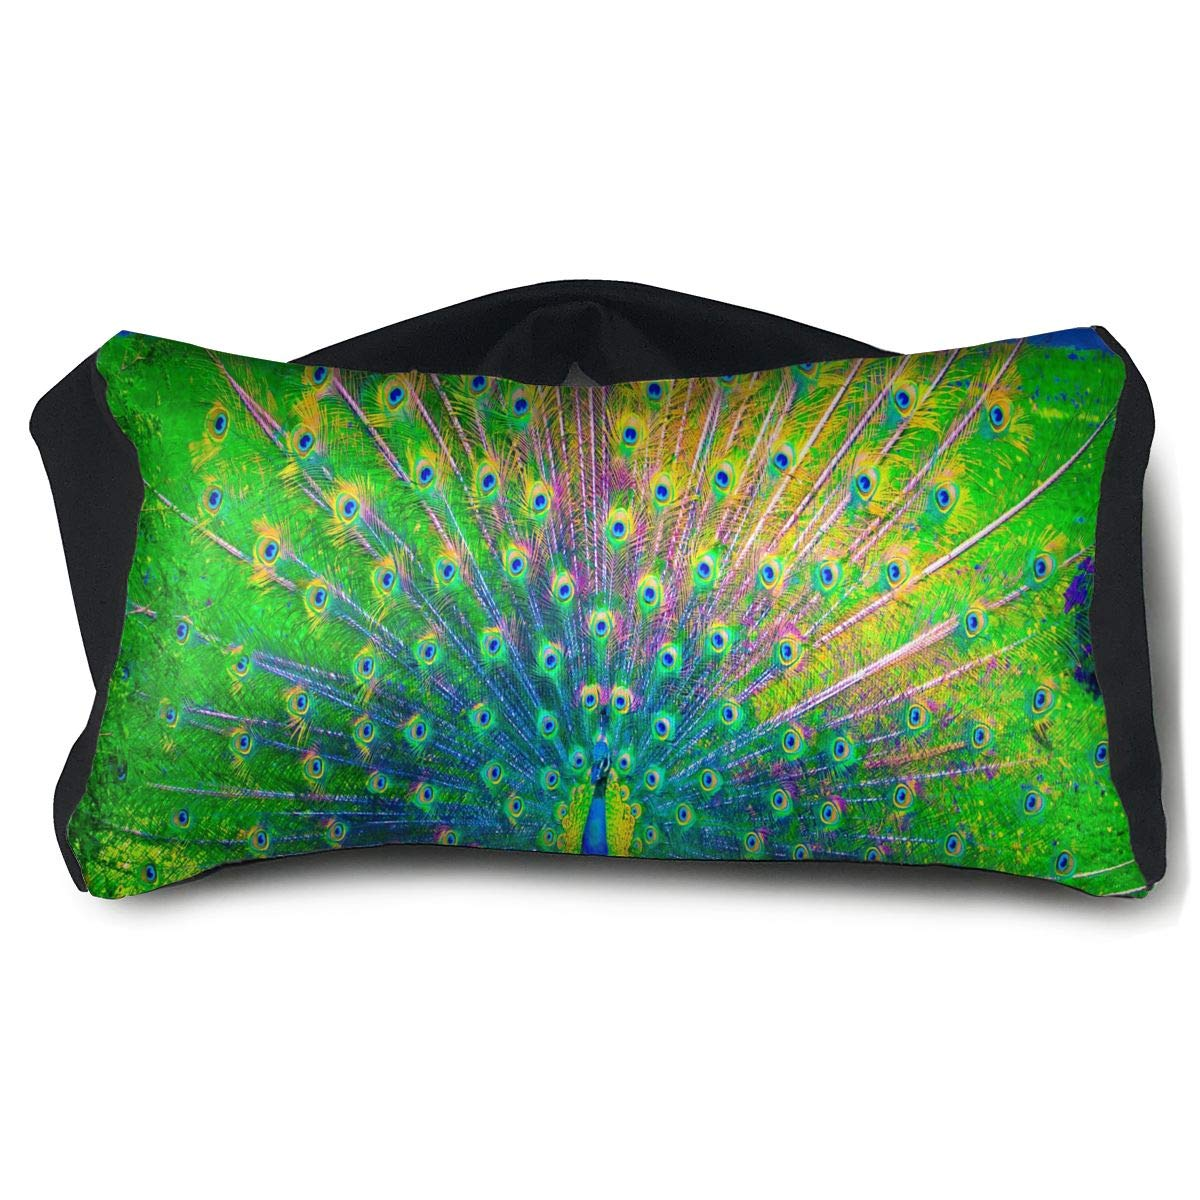 Eye Pillow Beautiful Peacock Hd Images Fabulous Eye Bag Bed Mens Portable Blindfold Sleeping Protection by HJudge